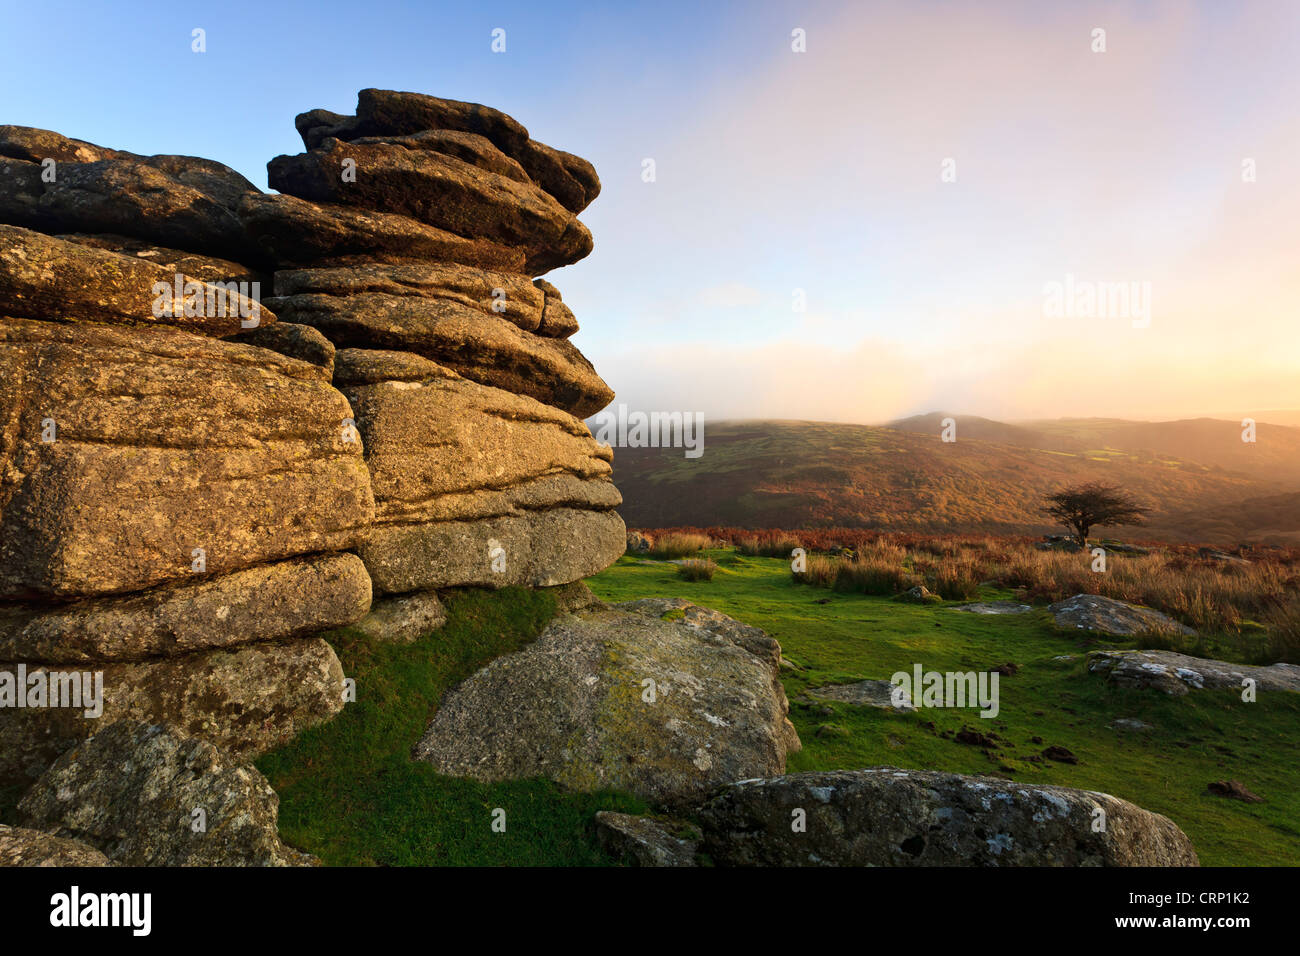 Early morning light on the granite outcrop of Combestone Tor in the Dartmoor National Park. - Stock Image